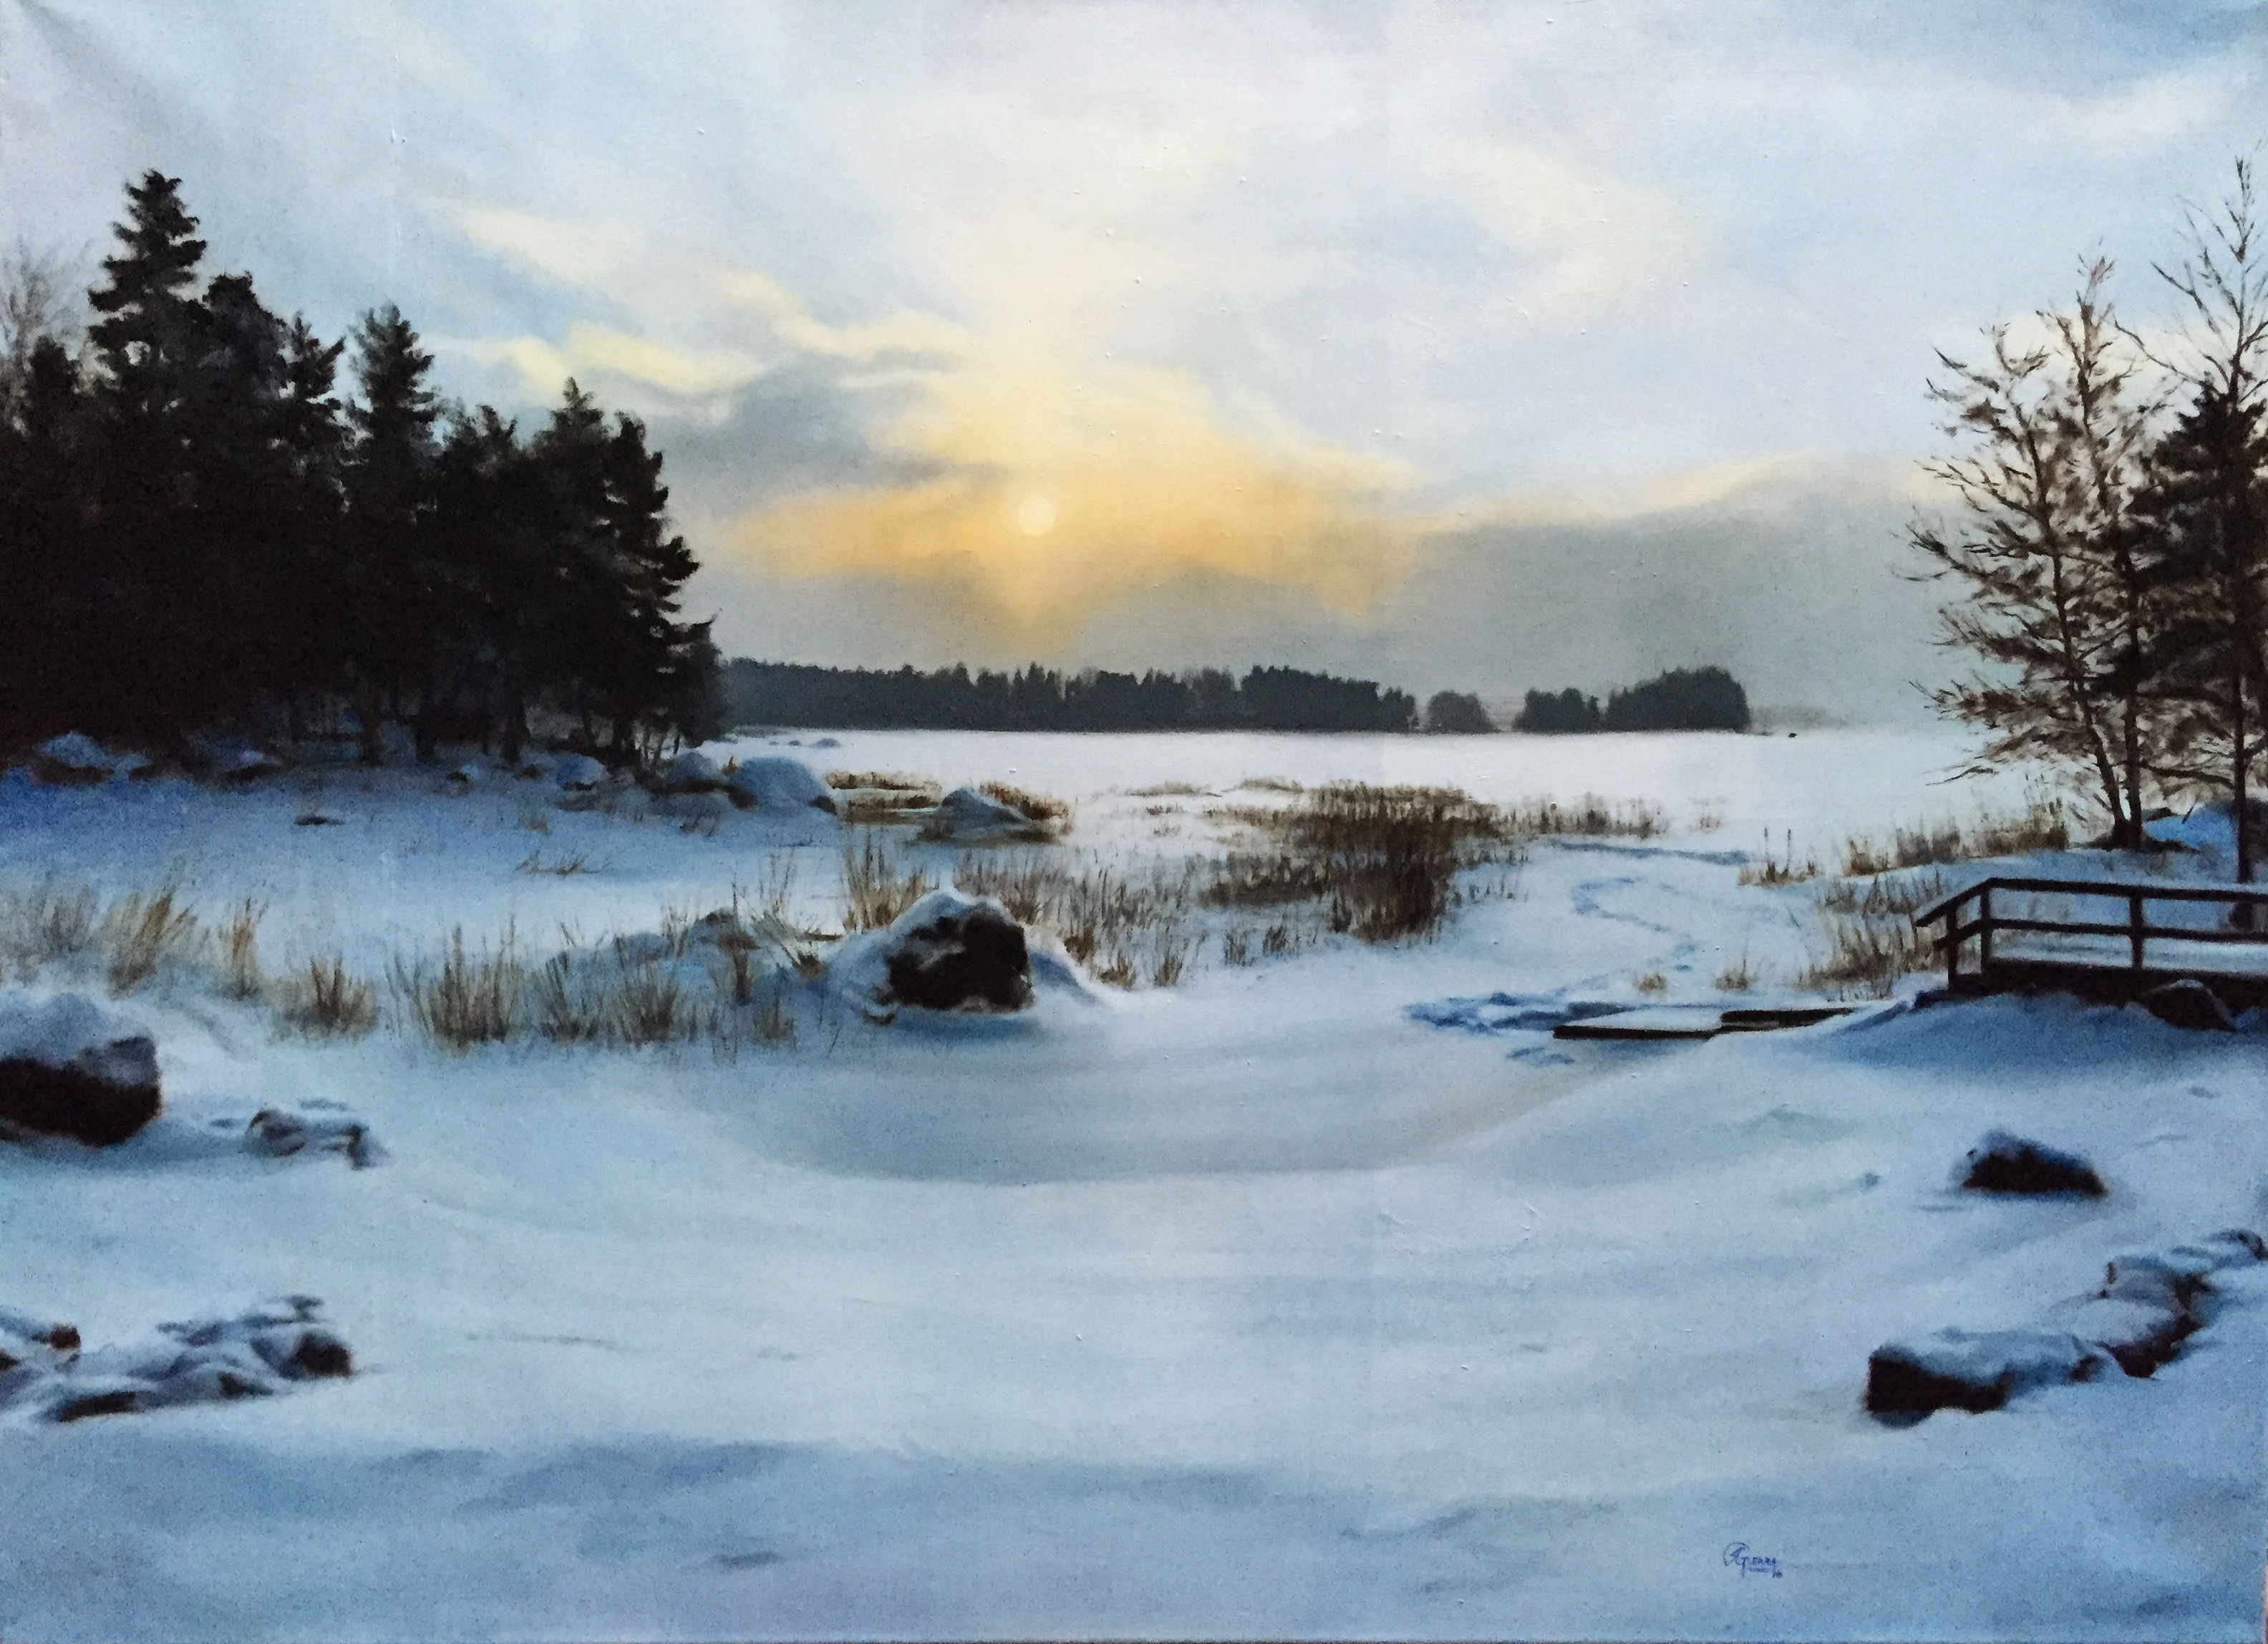 A Lake in Finland During Winter, Rafael Guerra Painting